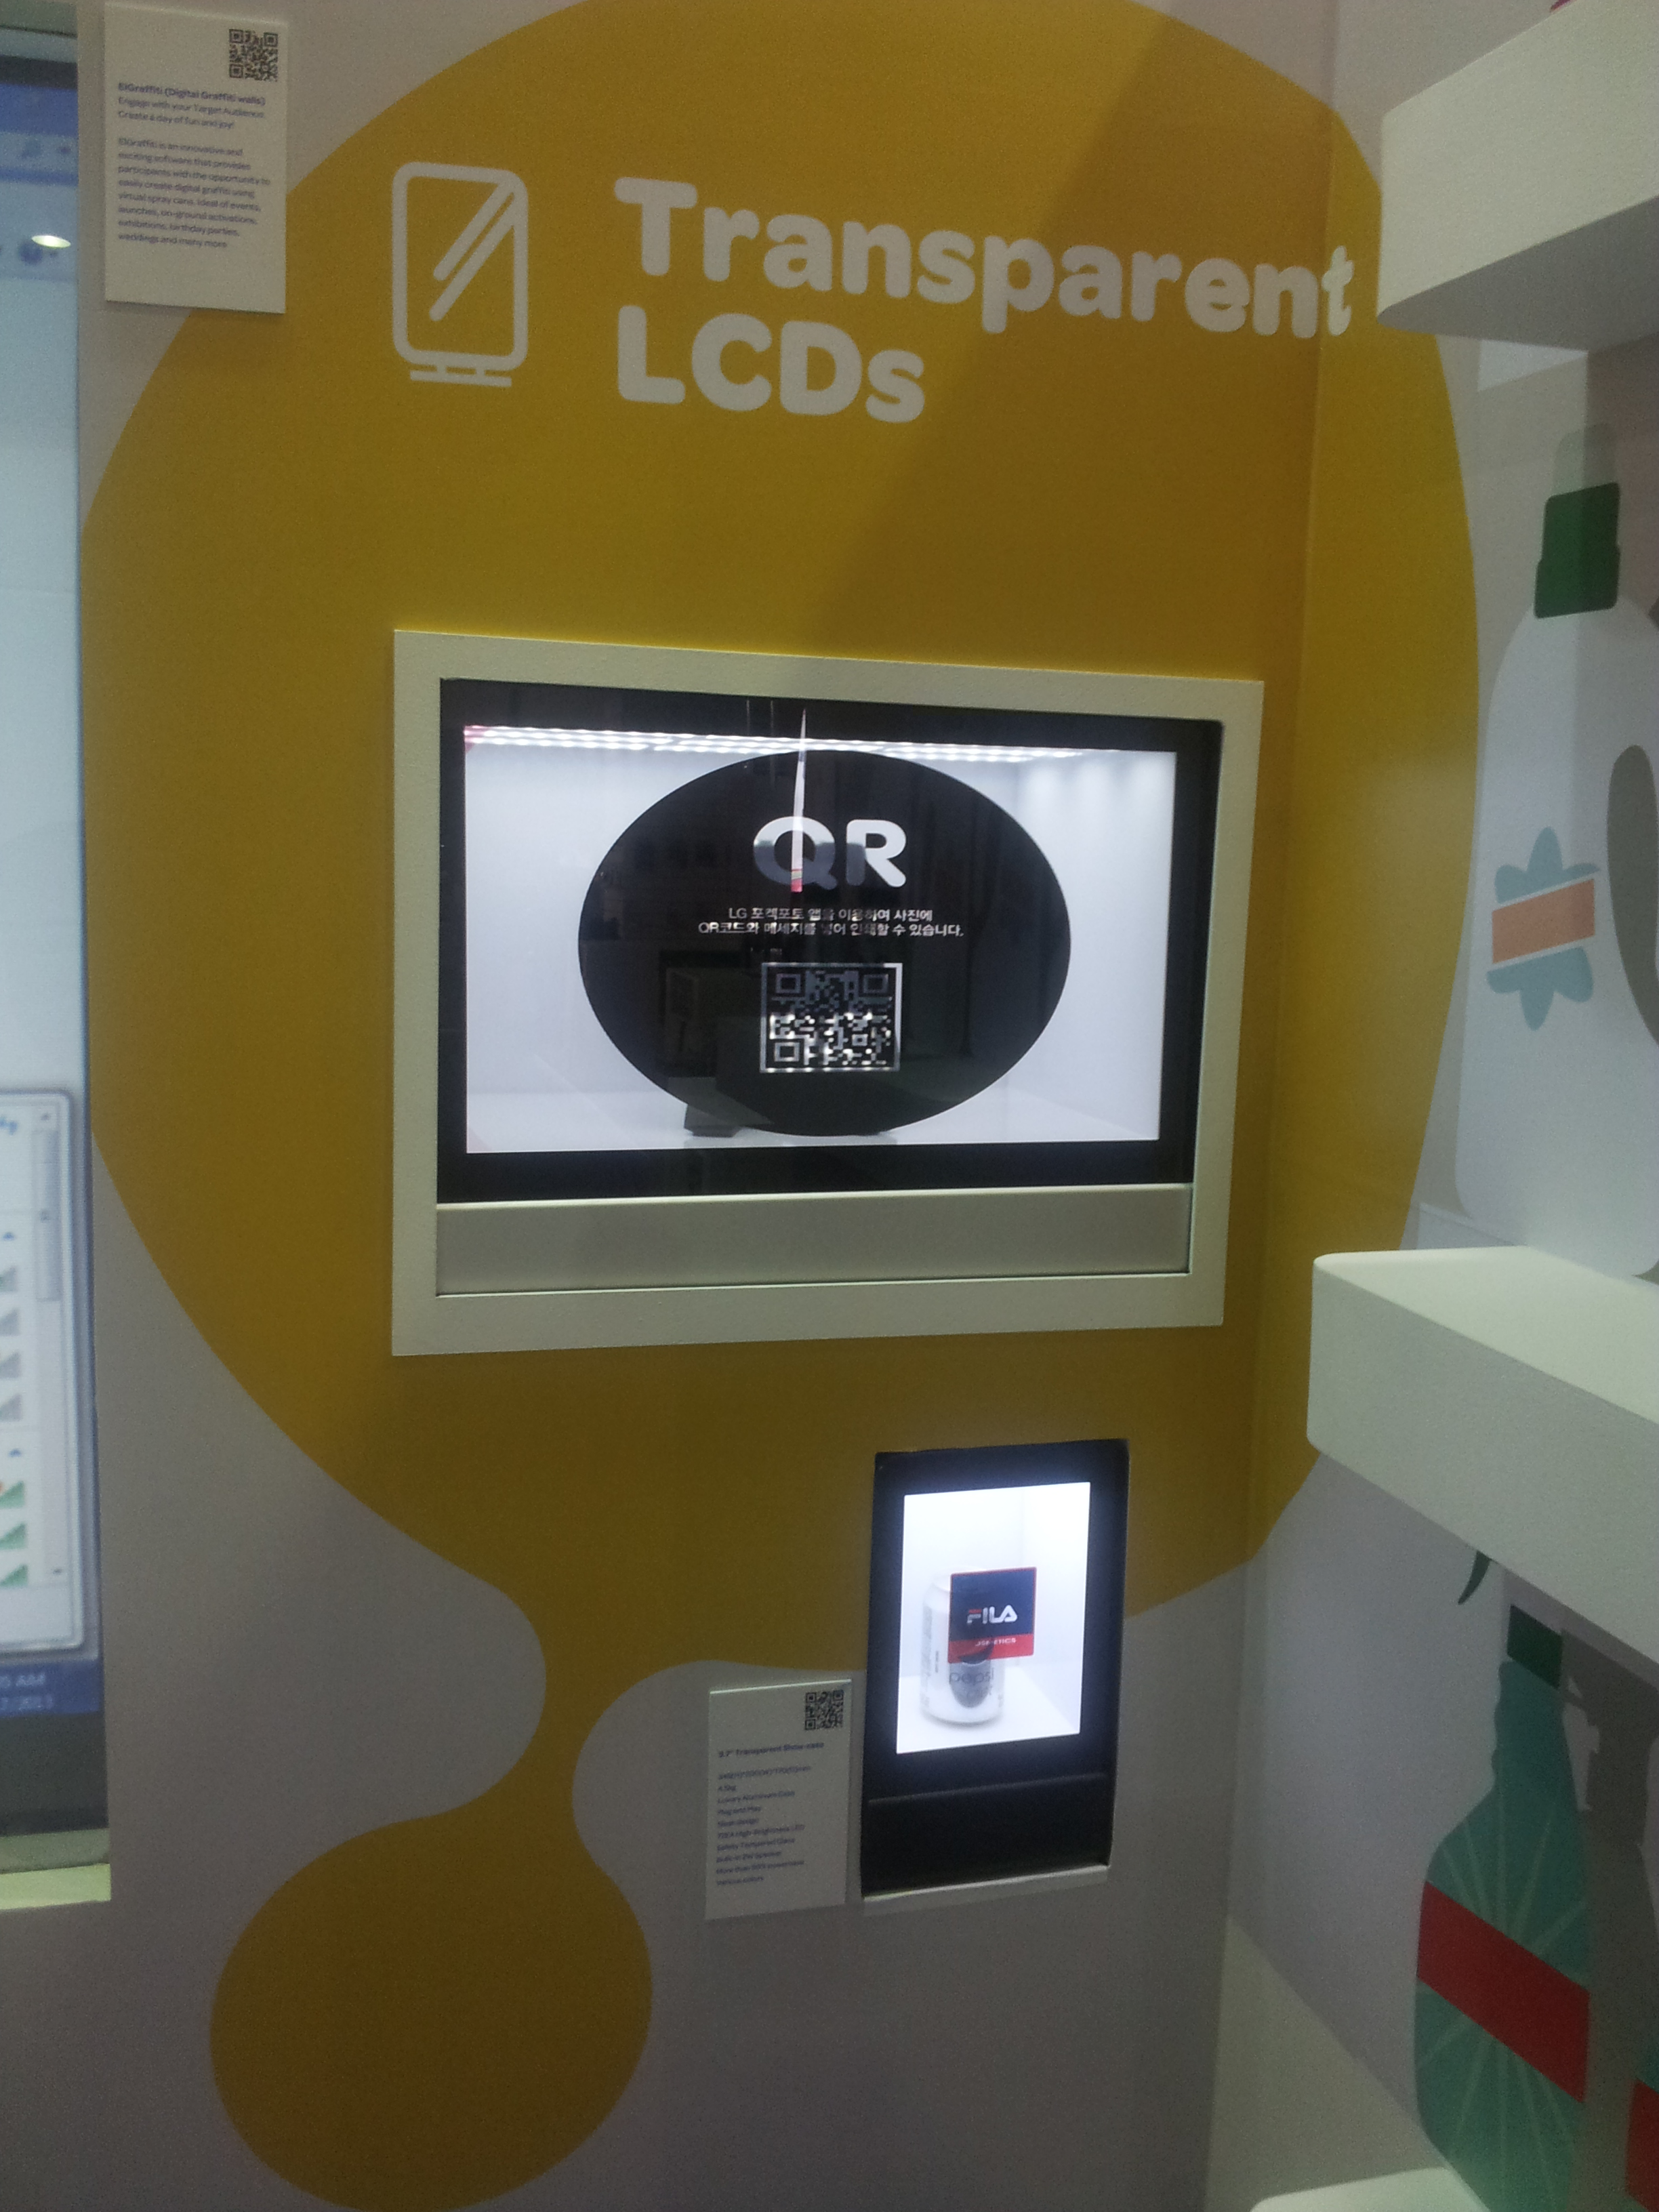 23 inch and 10 inch Transparent displays at Exhibition